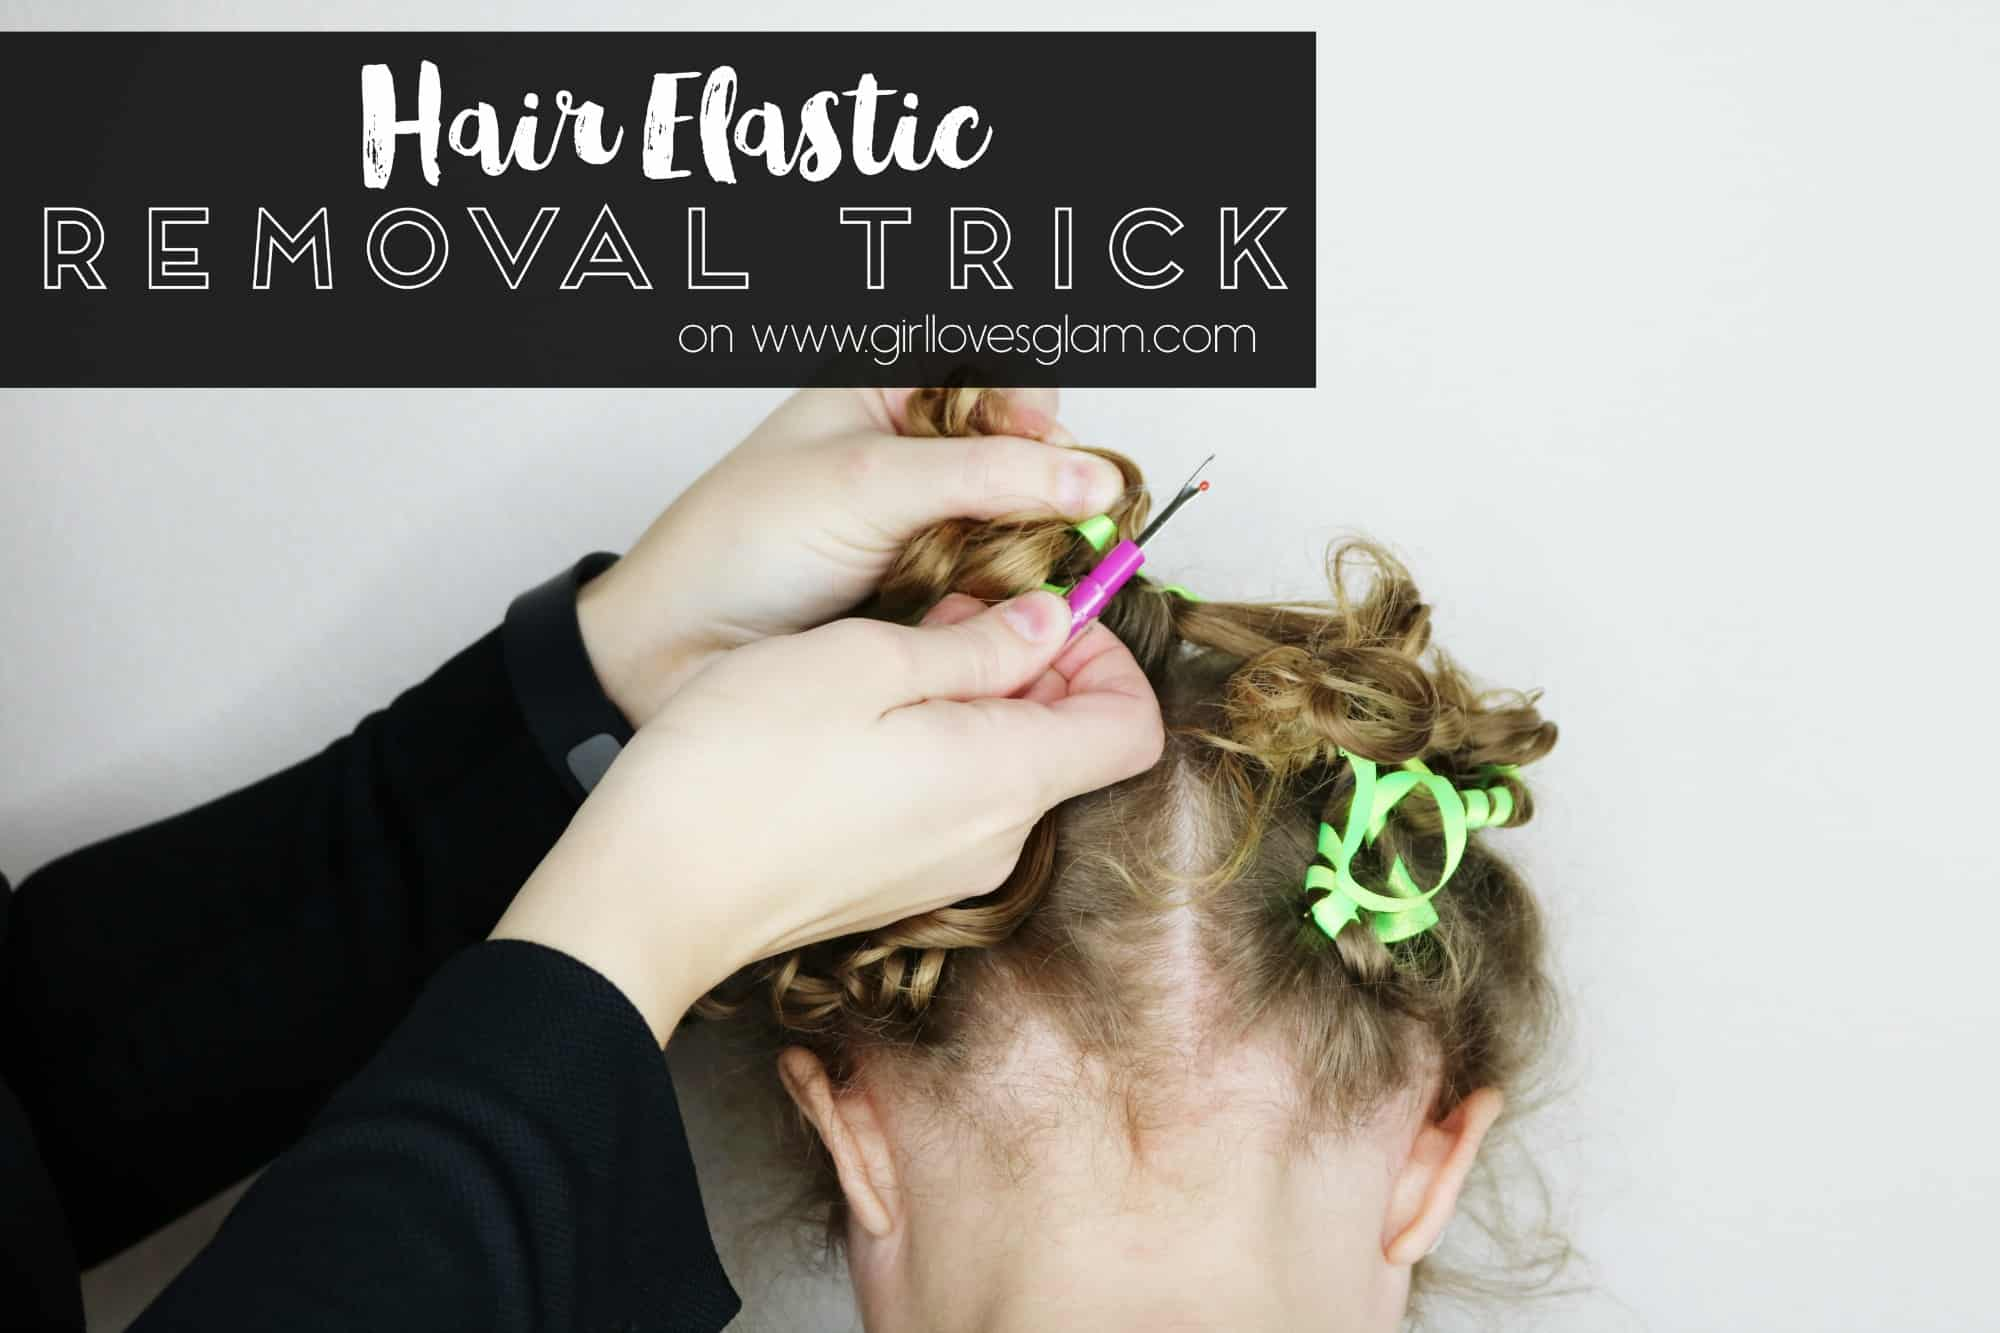 youtube hair elastic removal trick